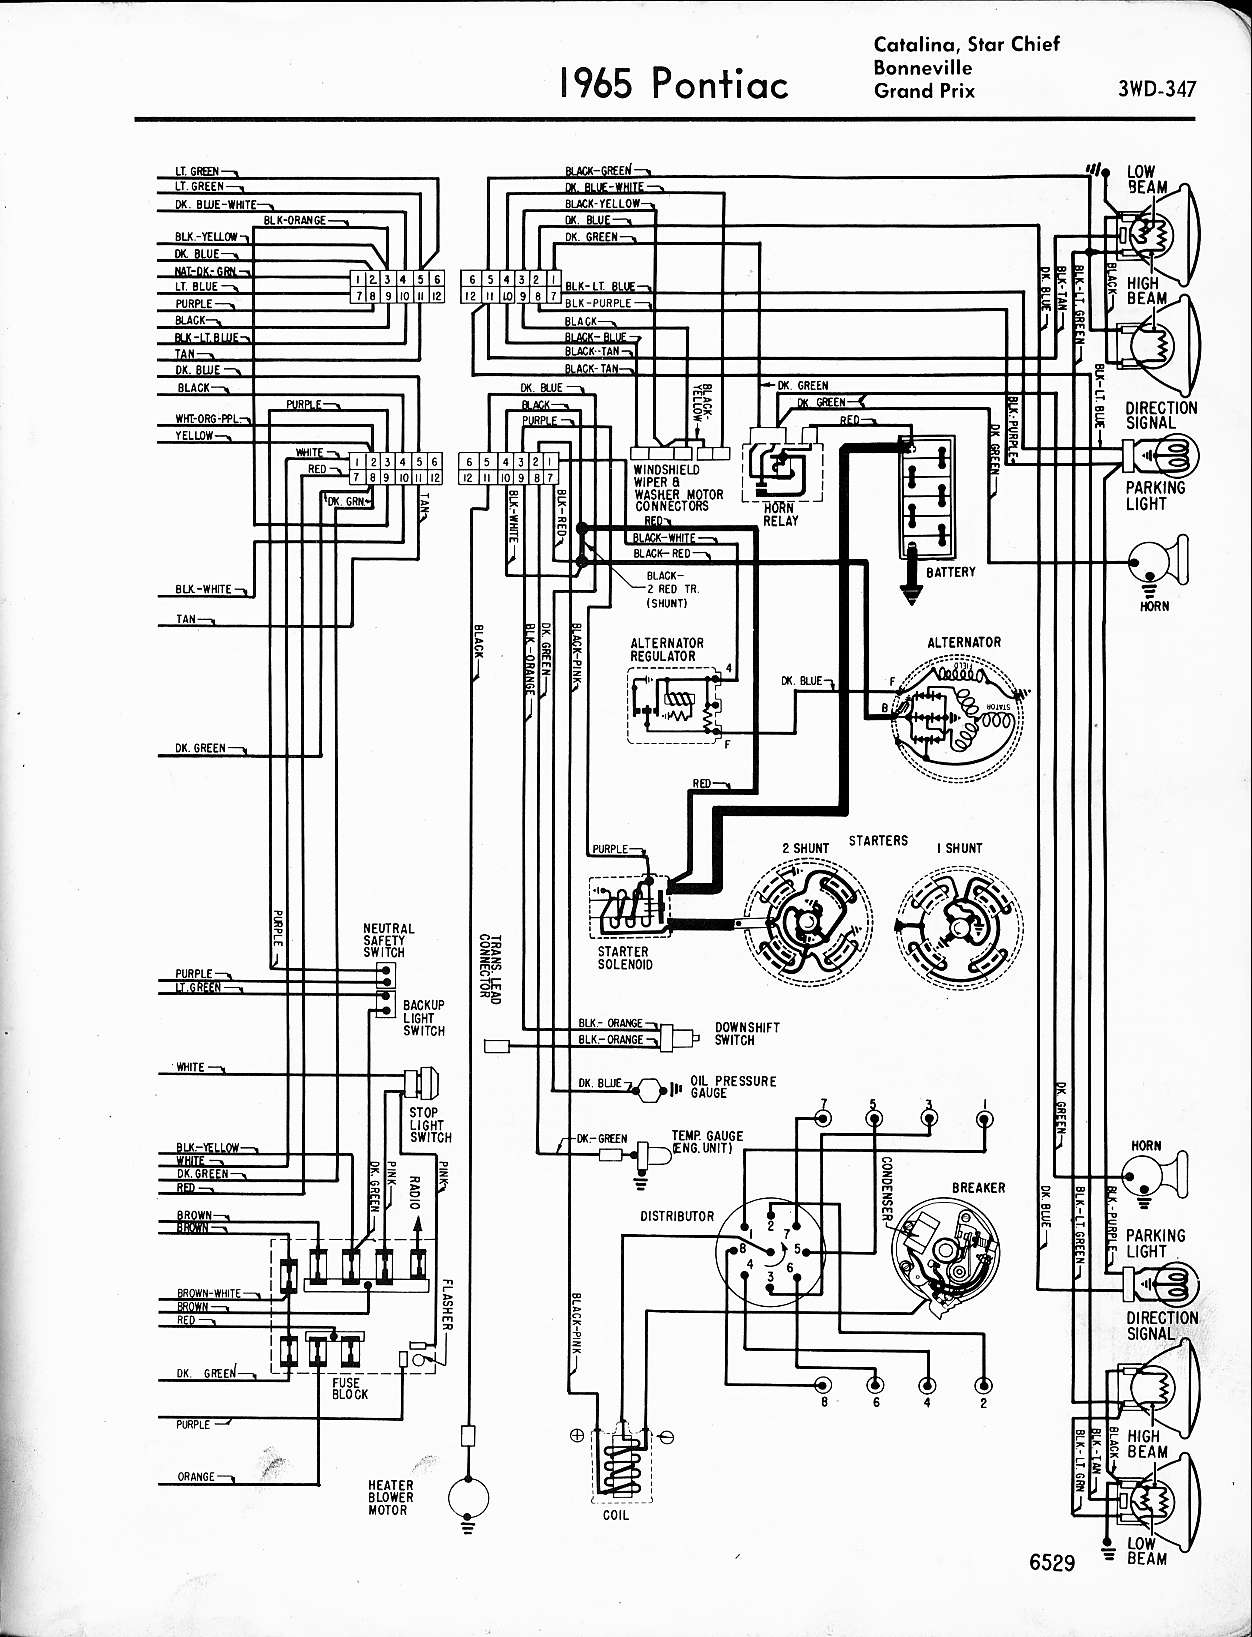 zuoda   search moreover 1950 Ford Car Wire Harness Diagrams additionally 5 Tab Rocker Switch Wiring additionally Old Chrysler Marine Engine Parts furthermore Mitsubishi Montero Horn Wiring Diagram. on 1965 ford wiring connectors